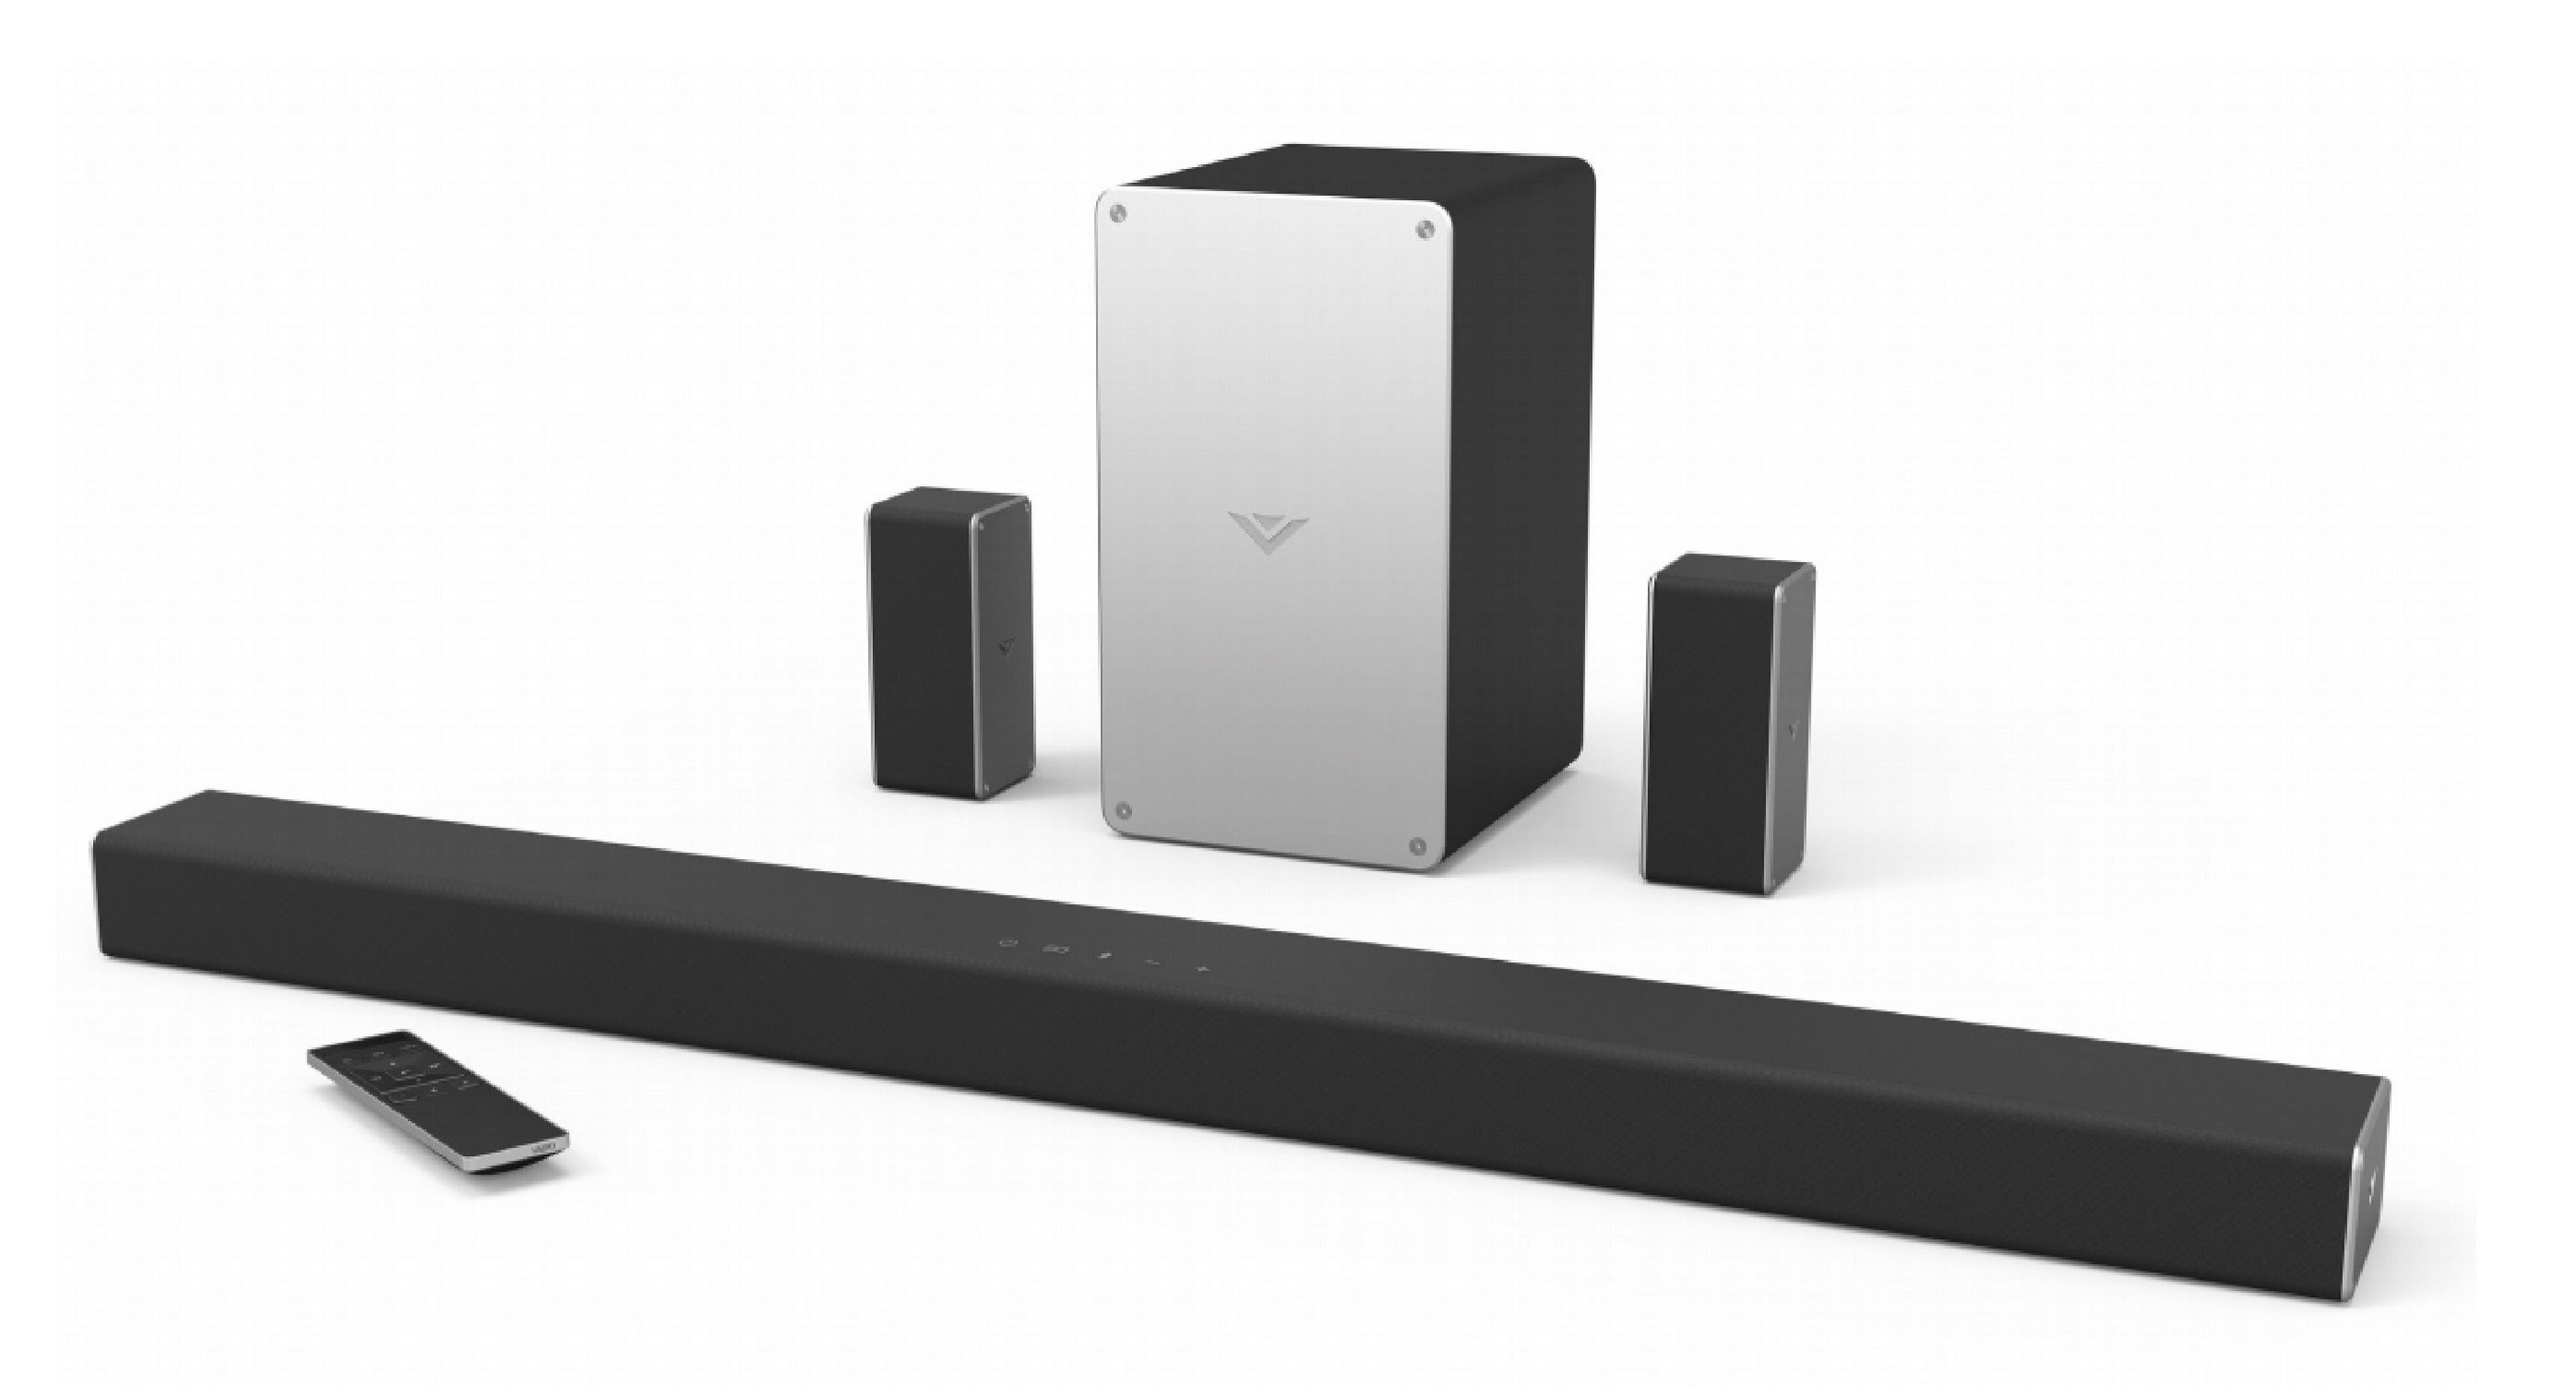 Vizio Smartcast Sound Bar Model Sb3651 E6 Review The High Tech Surround Installation Tips Feature Set Comes With A Few Sonic Tradeoffs Techhive